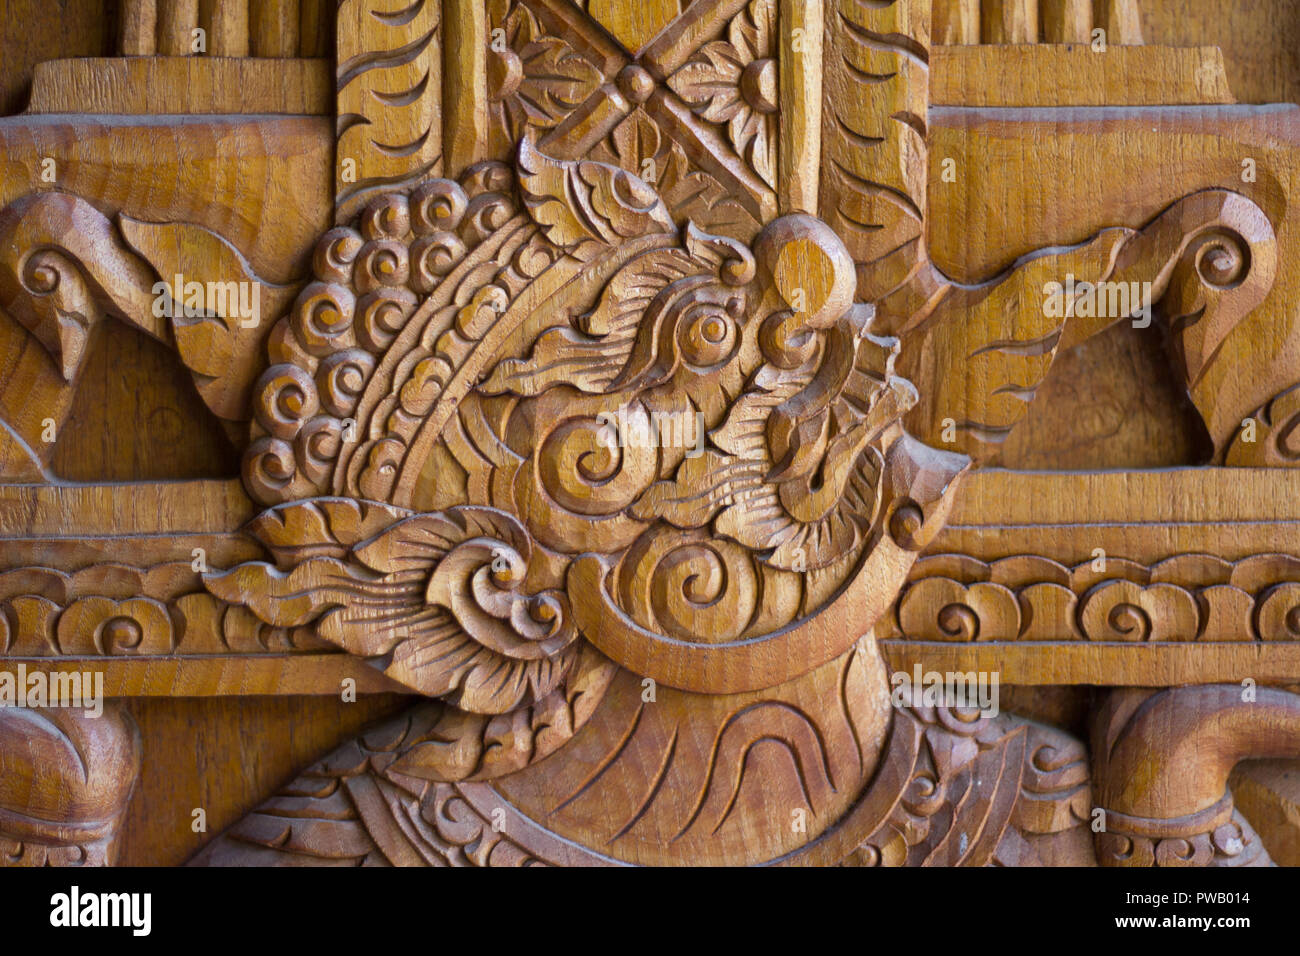 a wood carving depictiong image of a giant on the door of